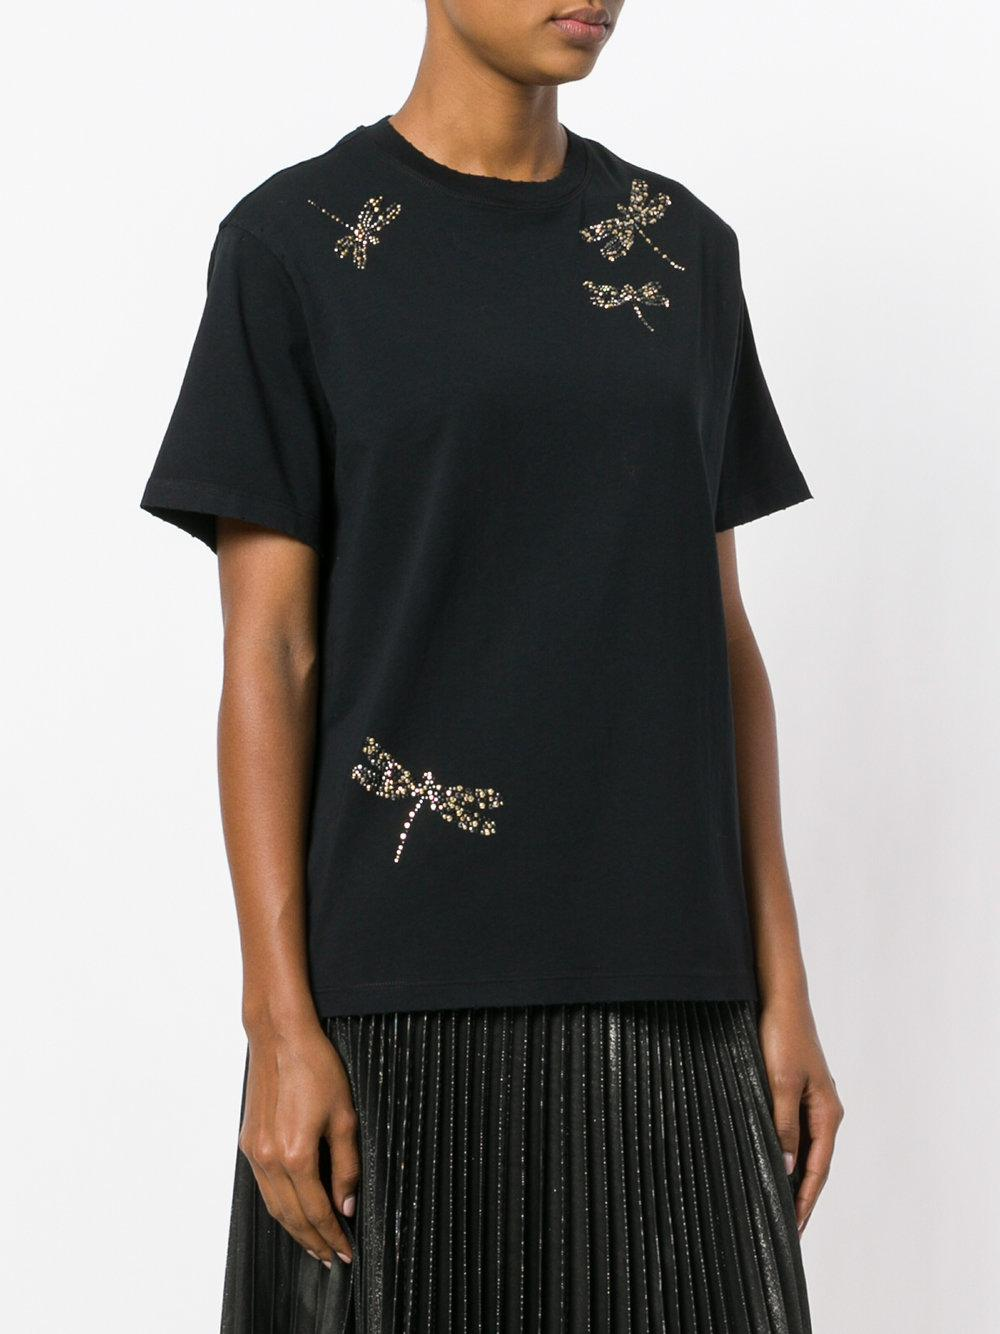 9fb2cd24d24f0 Lyst - RED Valentino Embellished Dragonfly T-shirt in Black